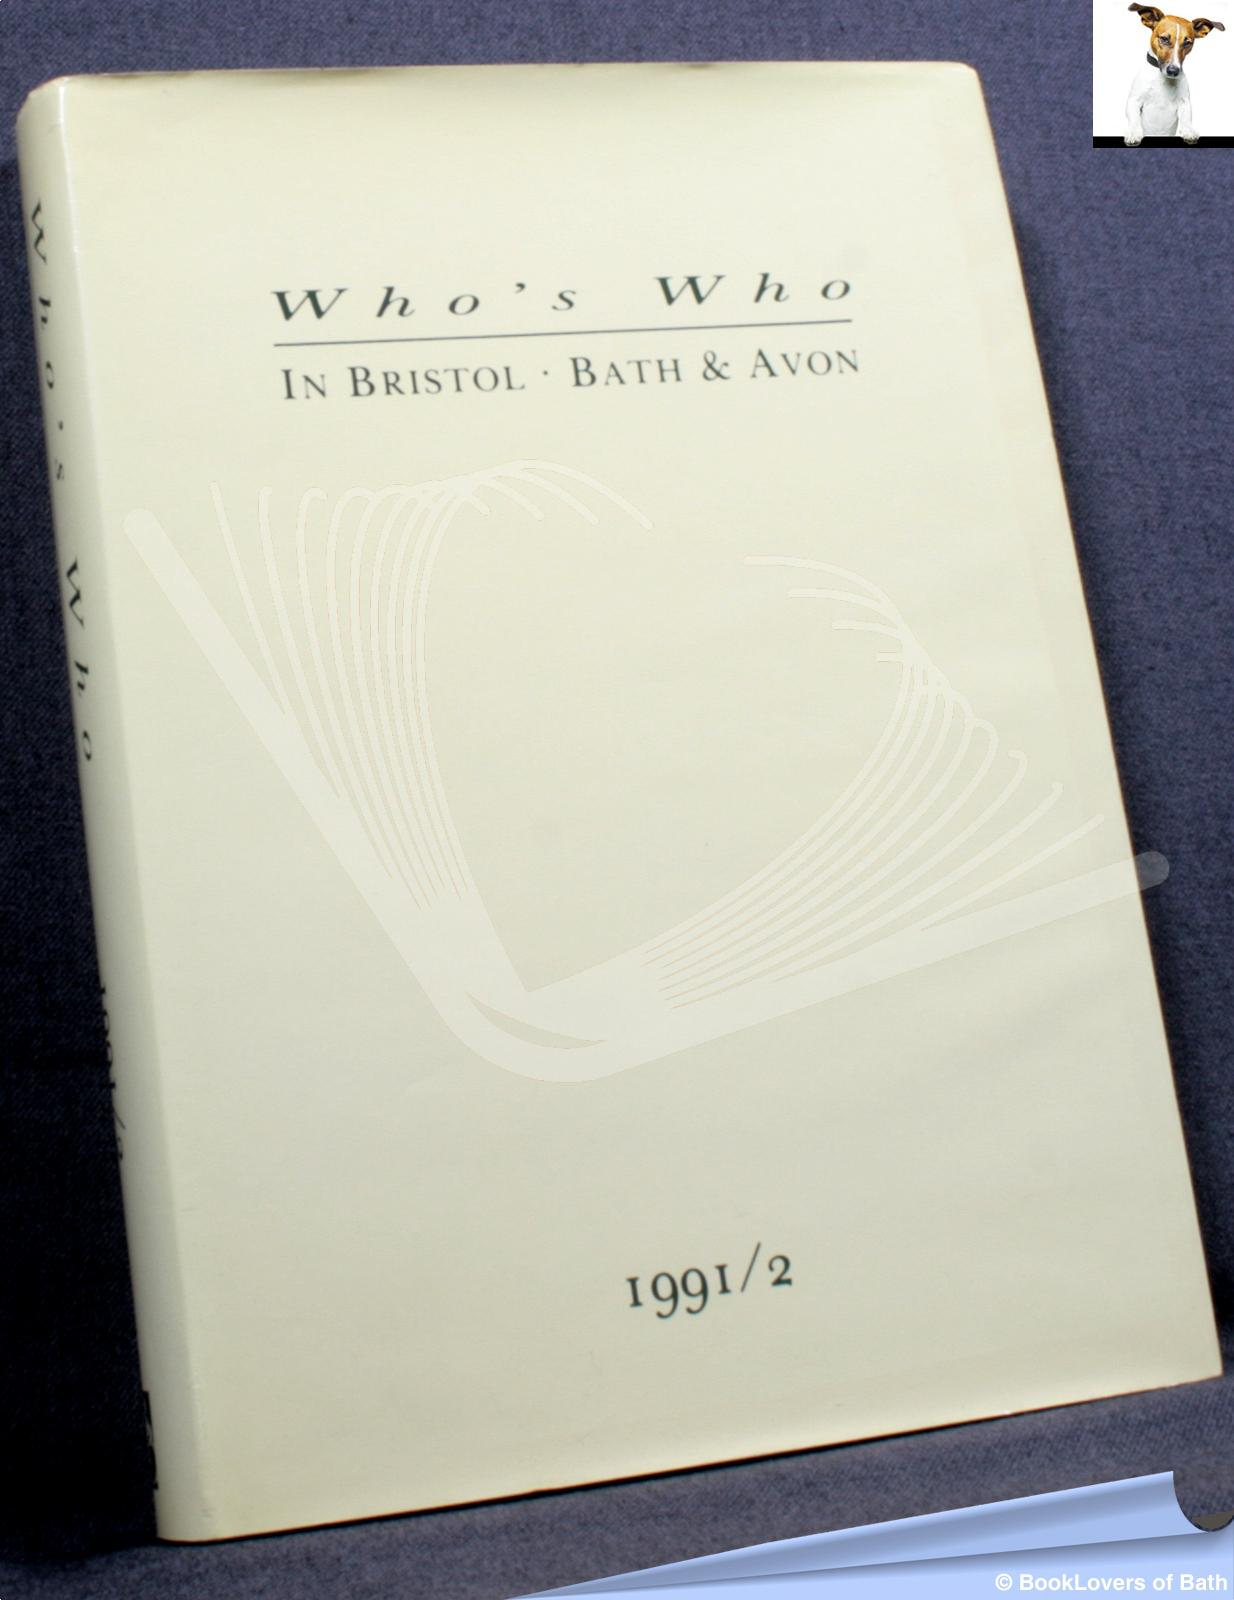 Who's Who in Bristol, Bath & Avon 1991/2 - Anon.